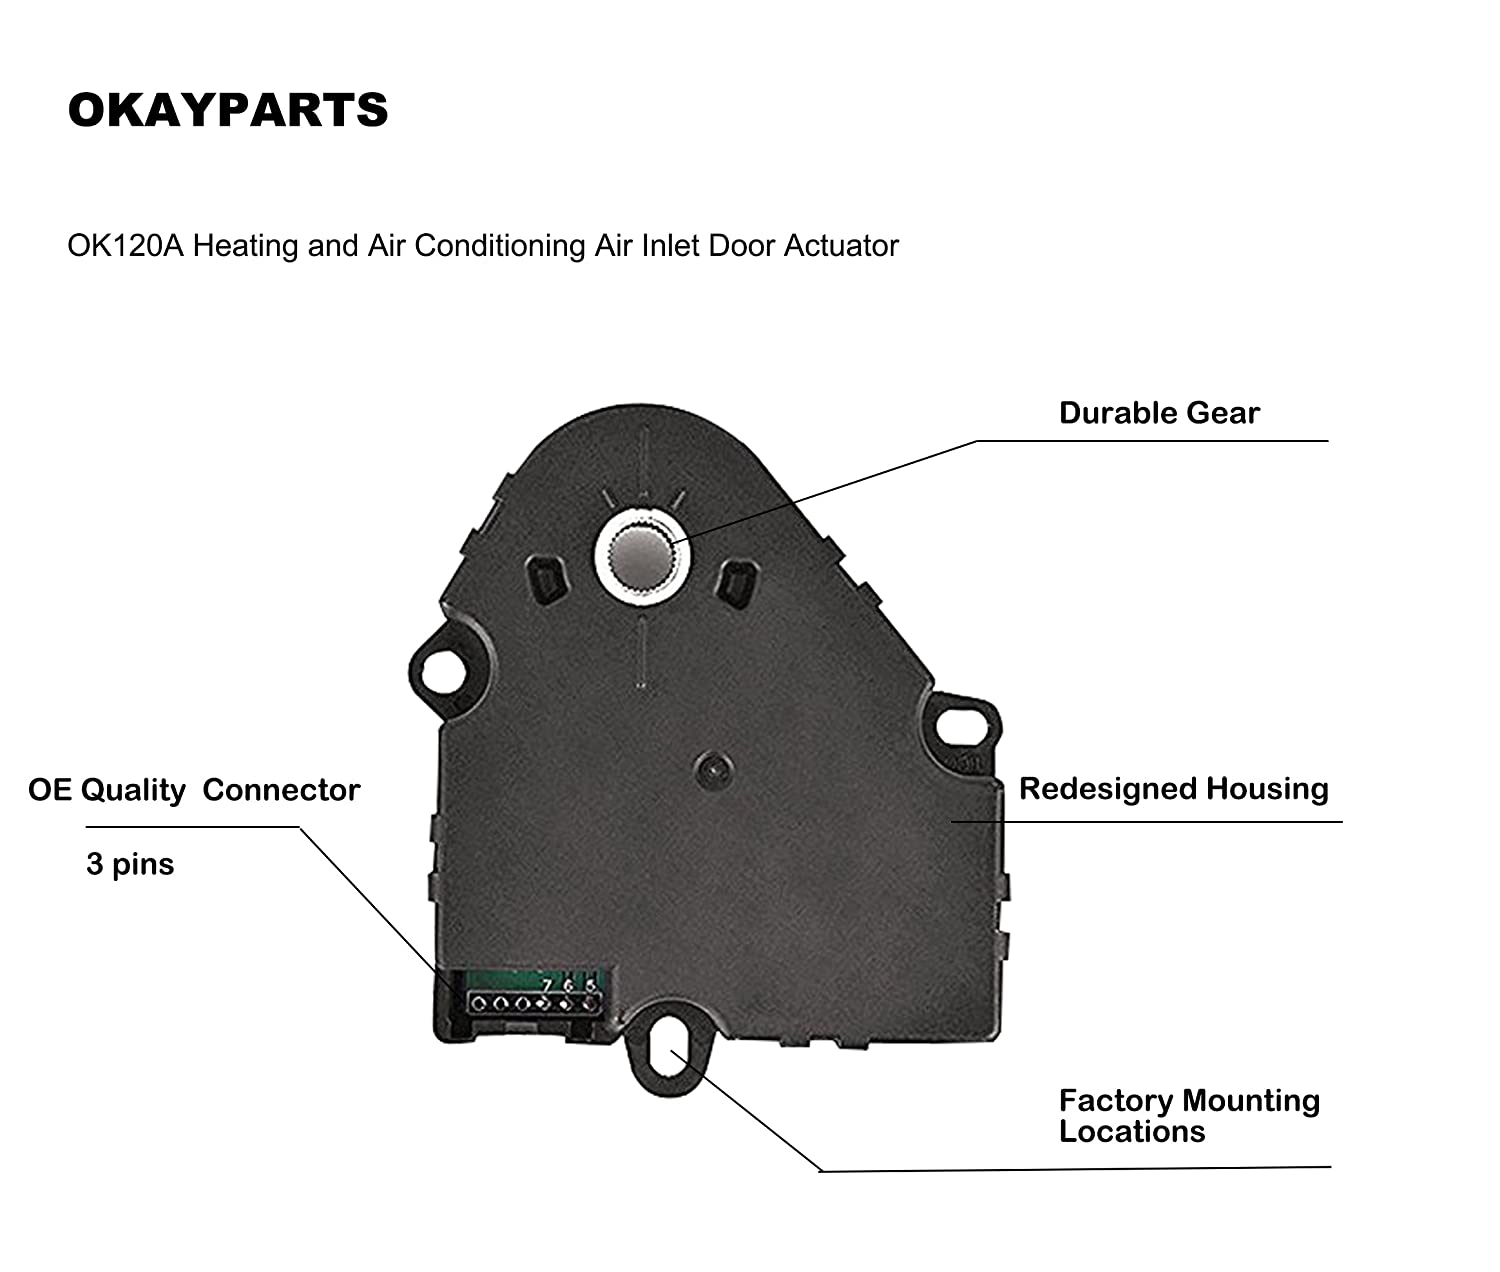 Okayparts Ok120a Hvac Heater Blend Door Actuator For Cool Pack Air Conditioning Wiring Diagram 1960 Chevrolet Passenger Car Buick Cadillac Isuzu Oldsmobile Chevy Gmc Replace 15 73599 89018373 89018678 604 120